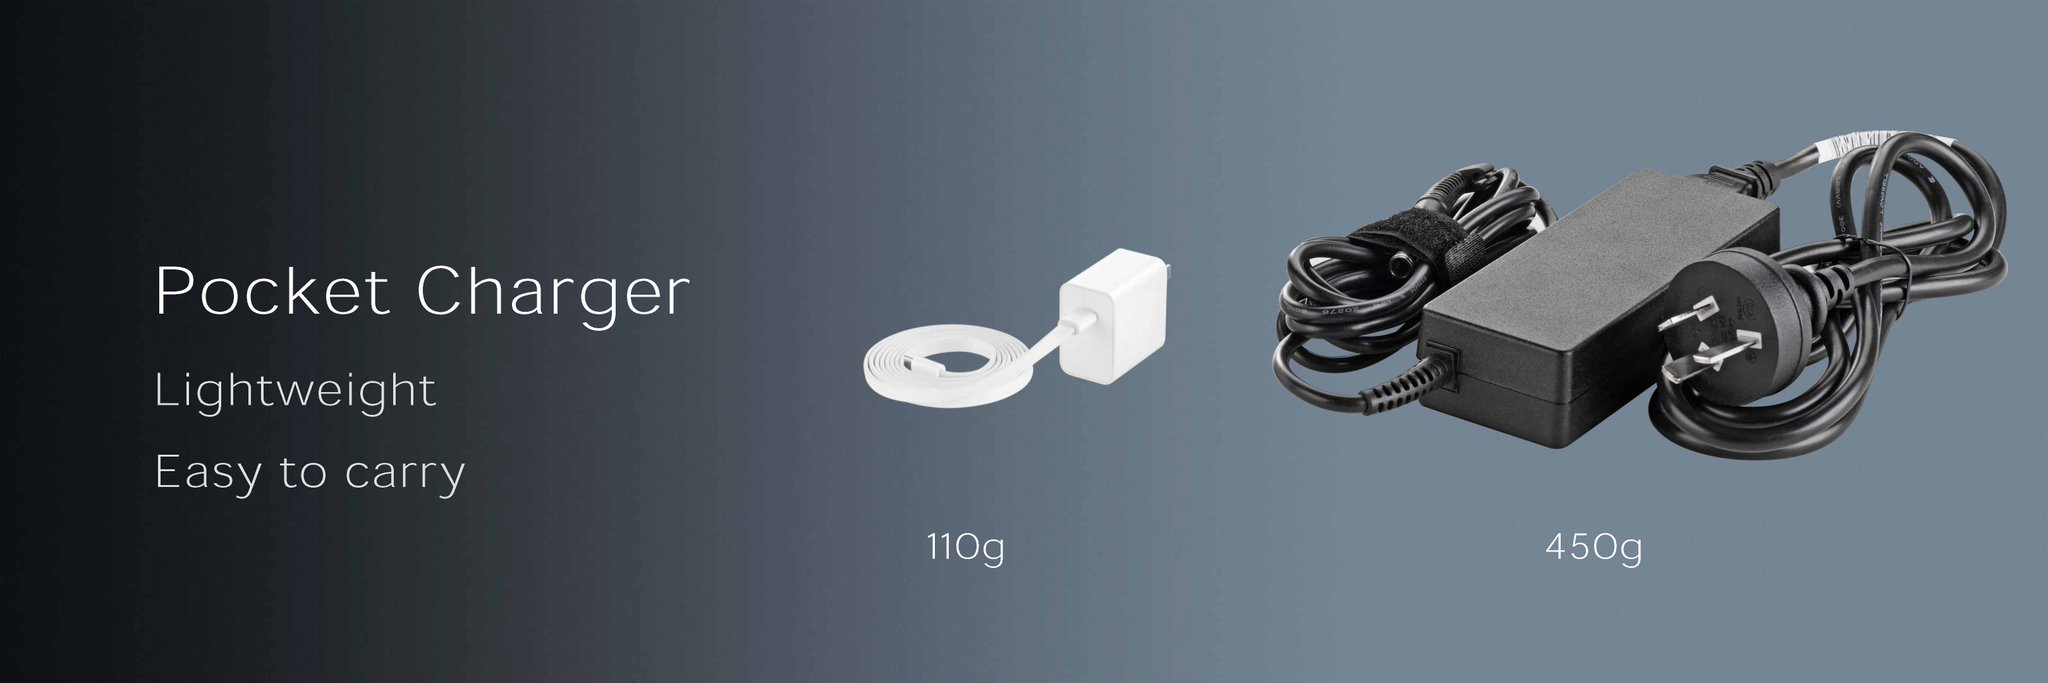 huawei matebook charger